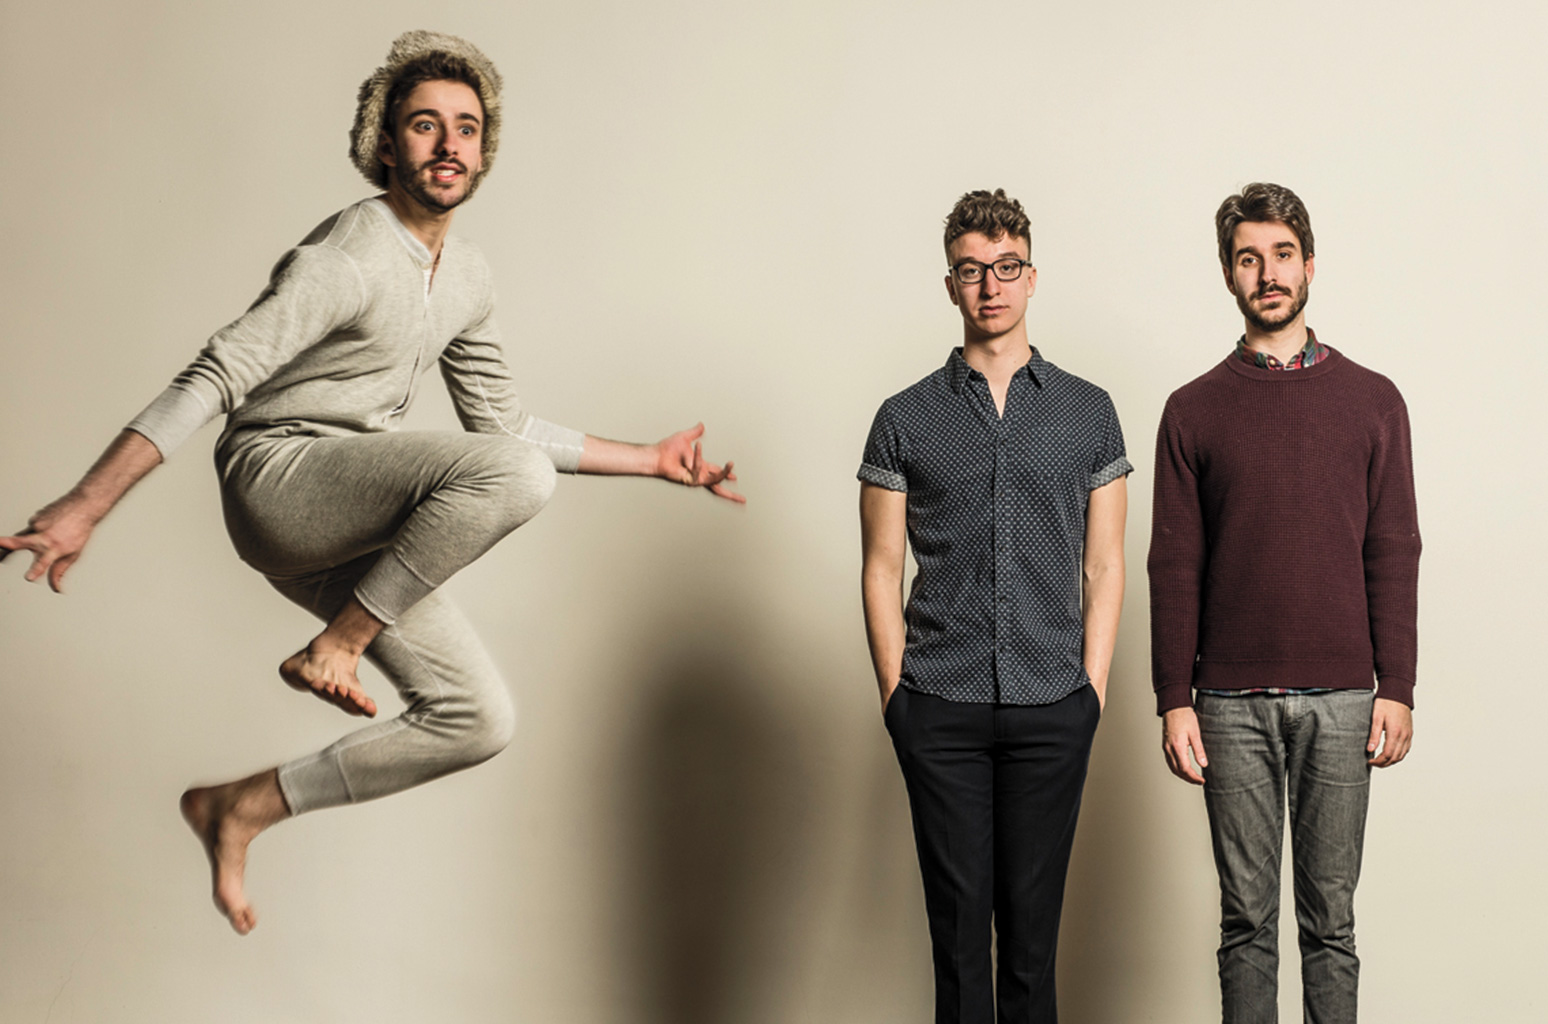 AJR featuring Rivers Cuomo, Cellphones during Sex, Phone Creeping